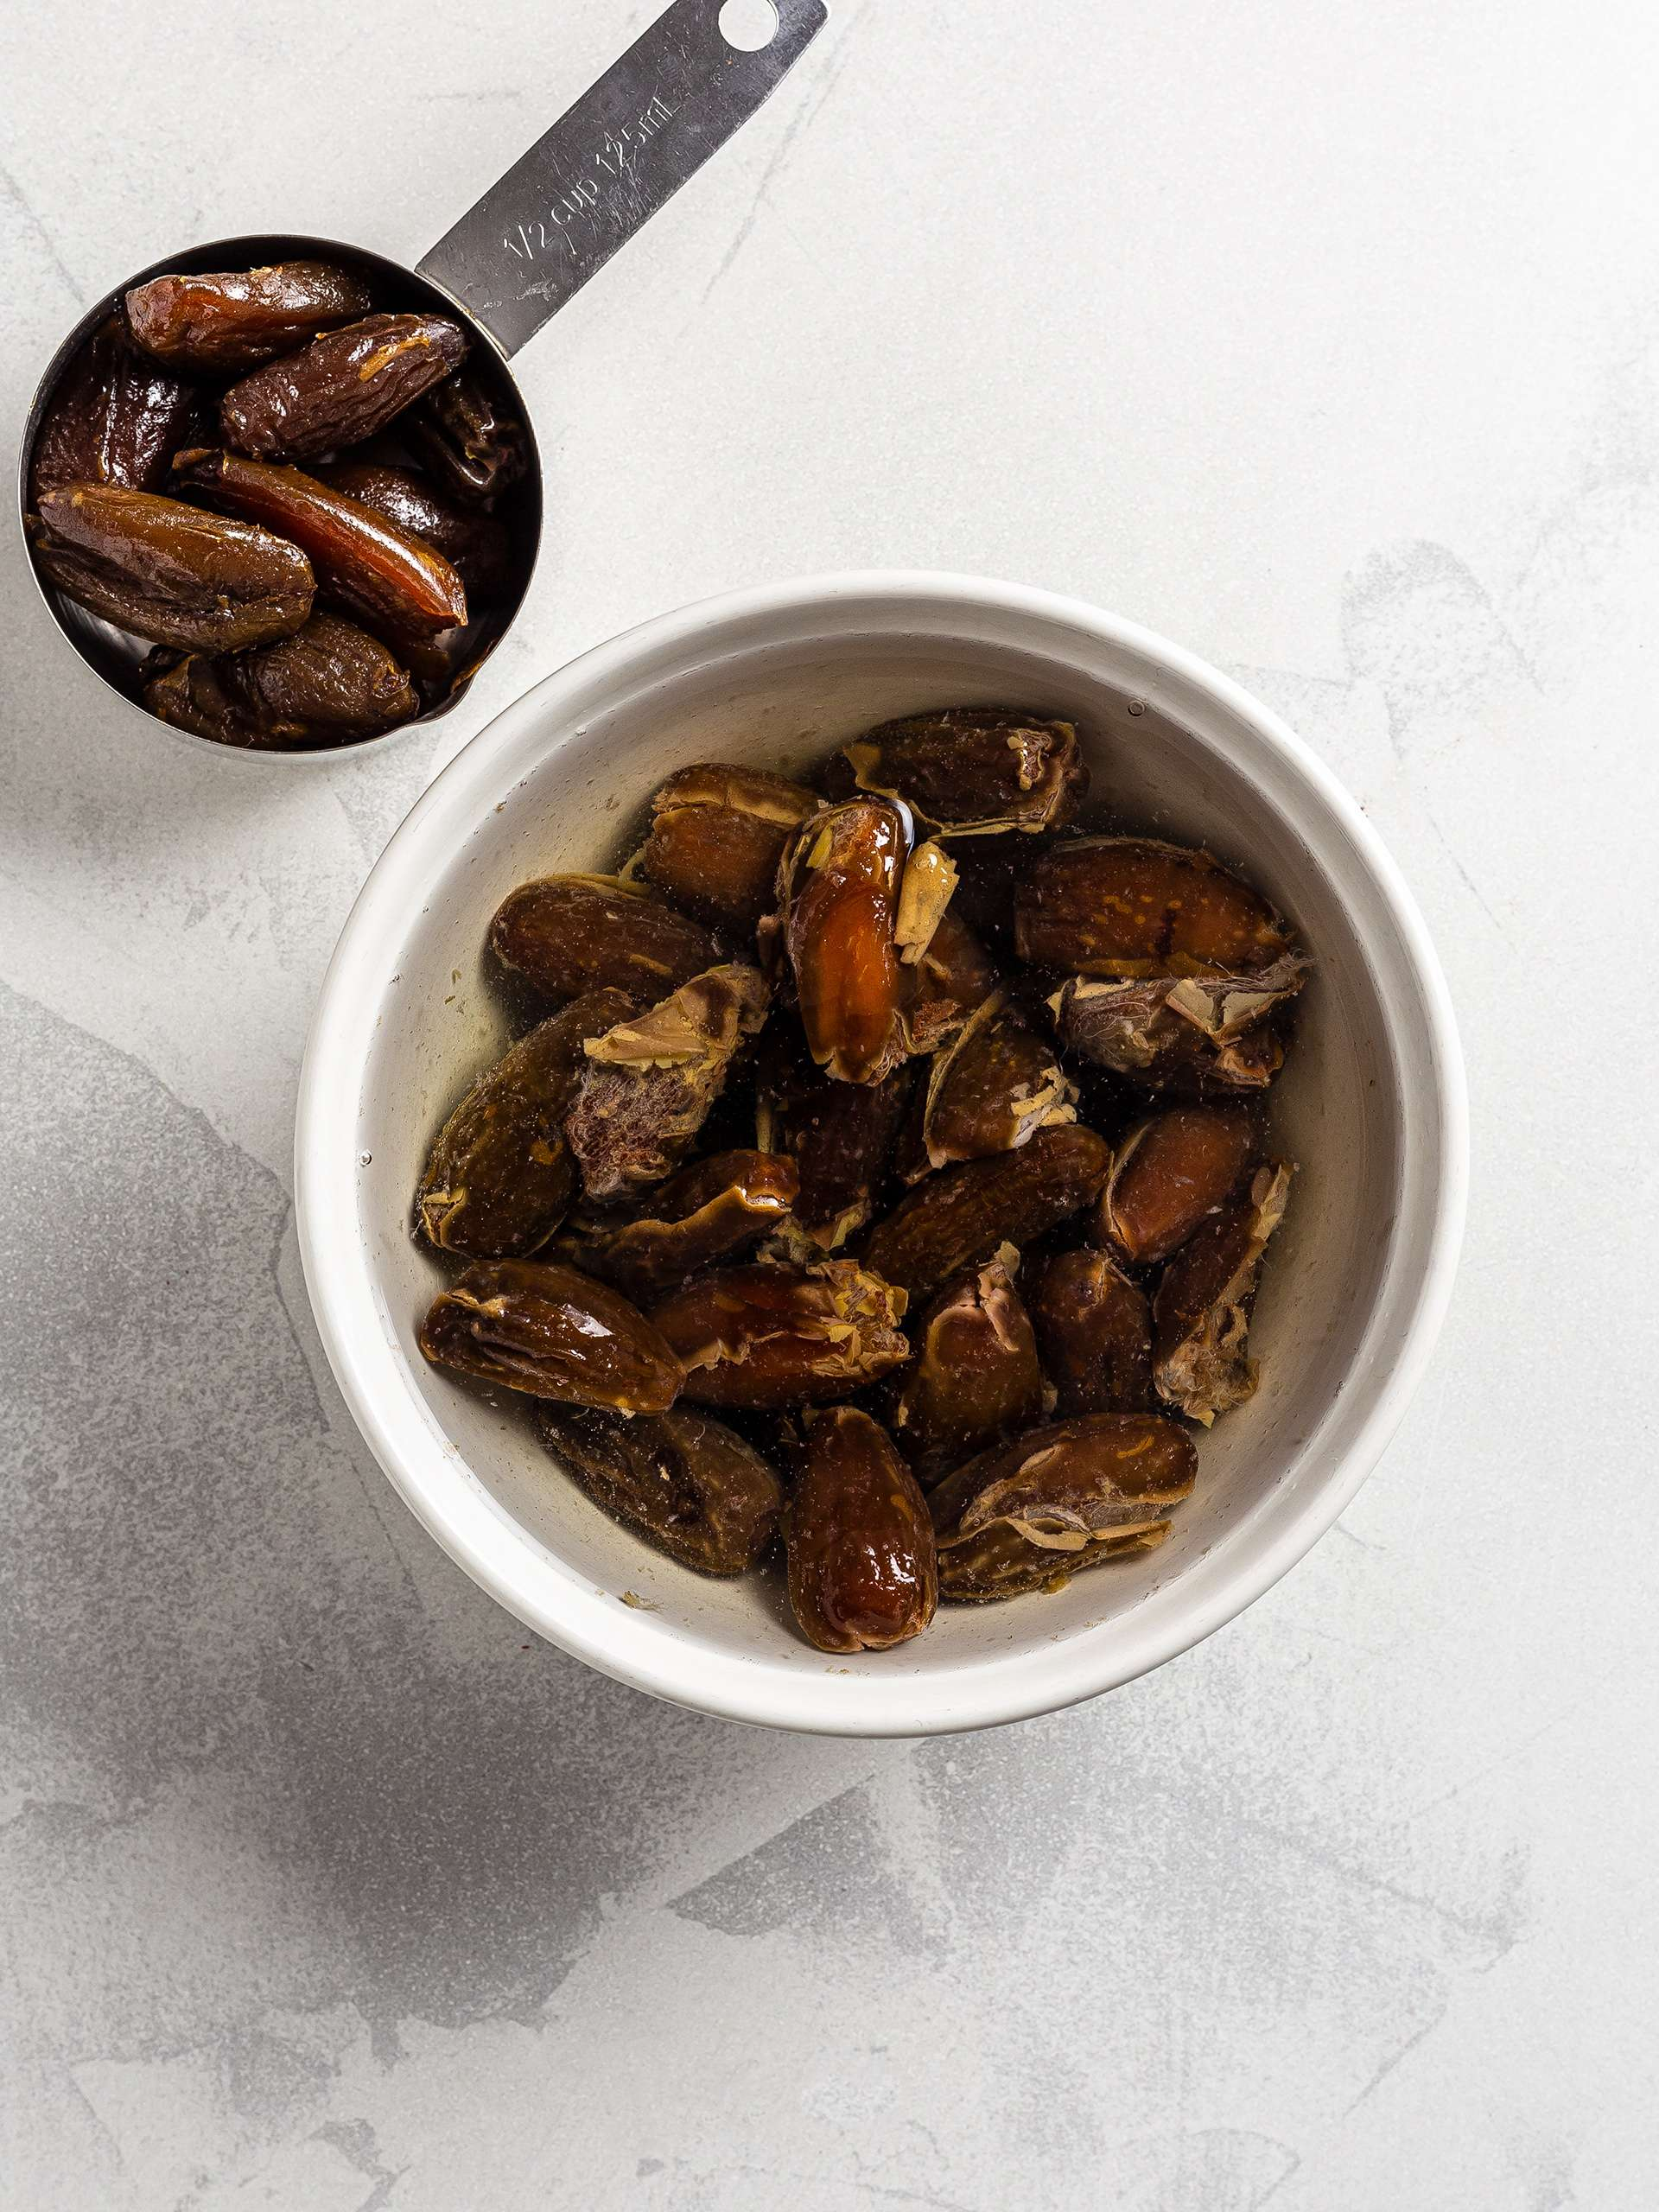 Soaked dates in a bowl